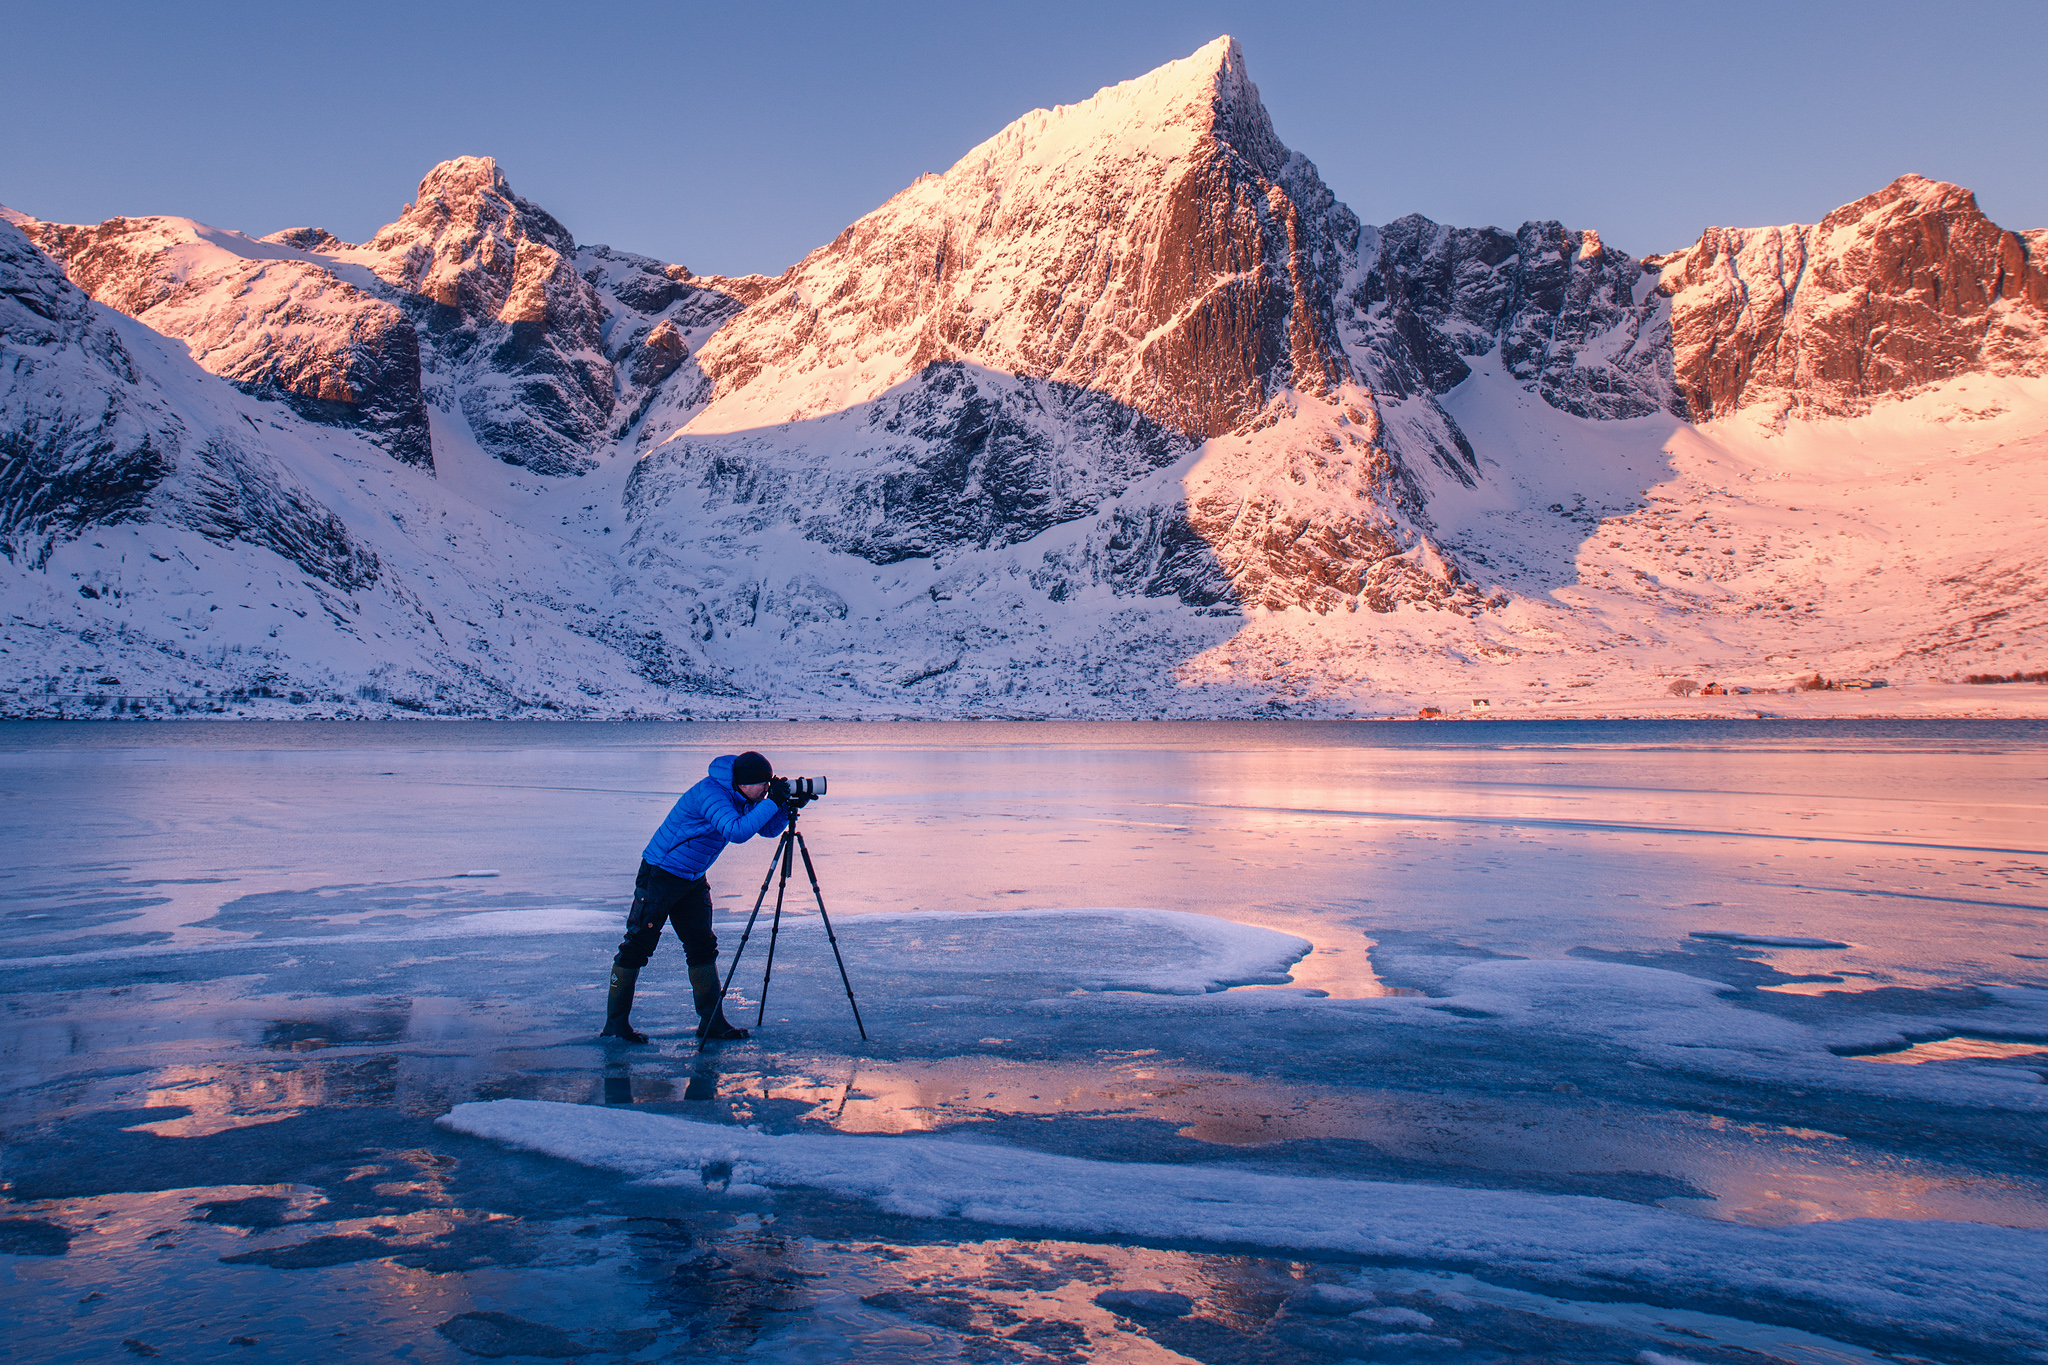 Photographing Lofoten, Norway (Image by: Mikkel Beiter)